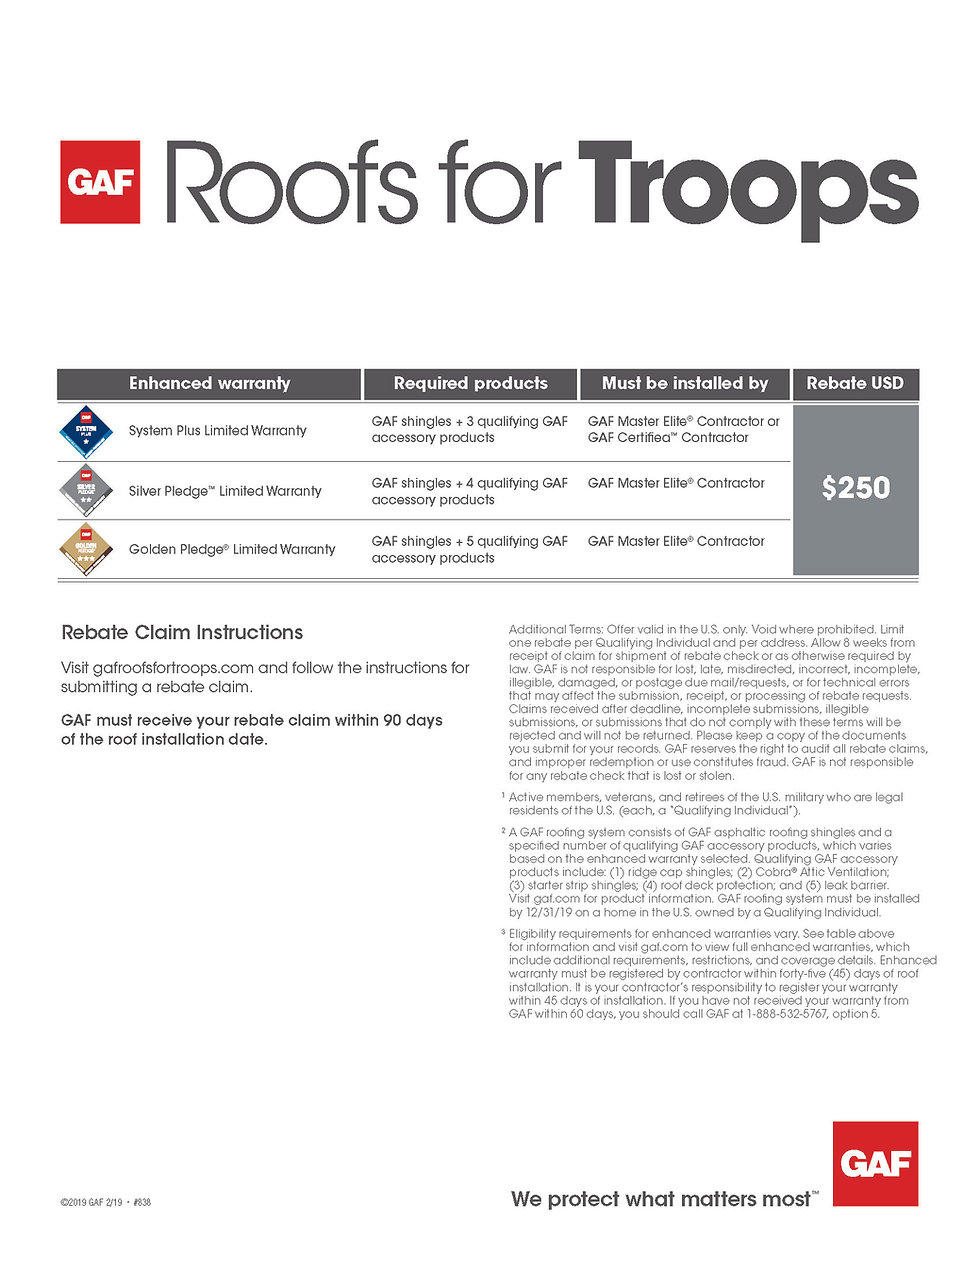 ROOFSforTROOPS_Page_2.jpg